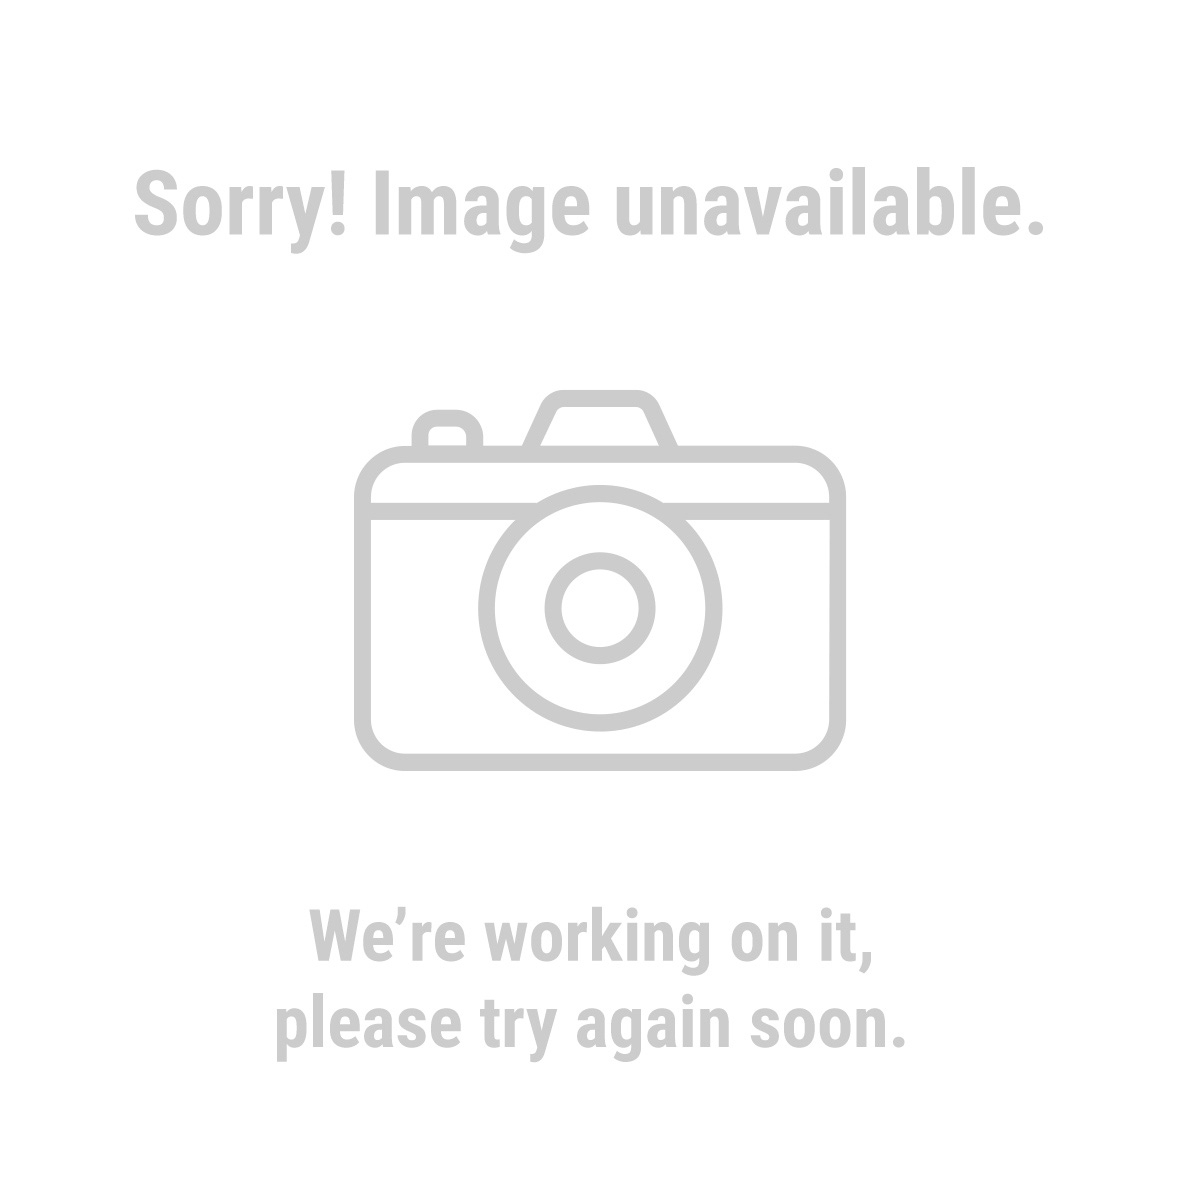 40 Piece Carbon Steel Metric Tap and Die Set